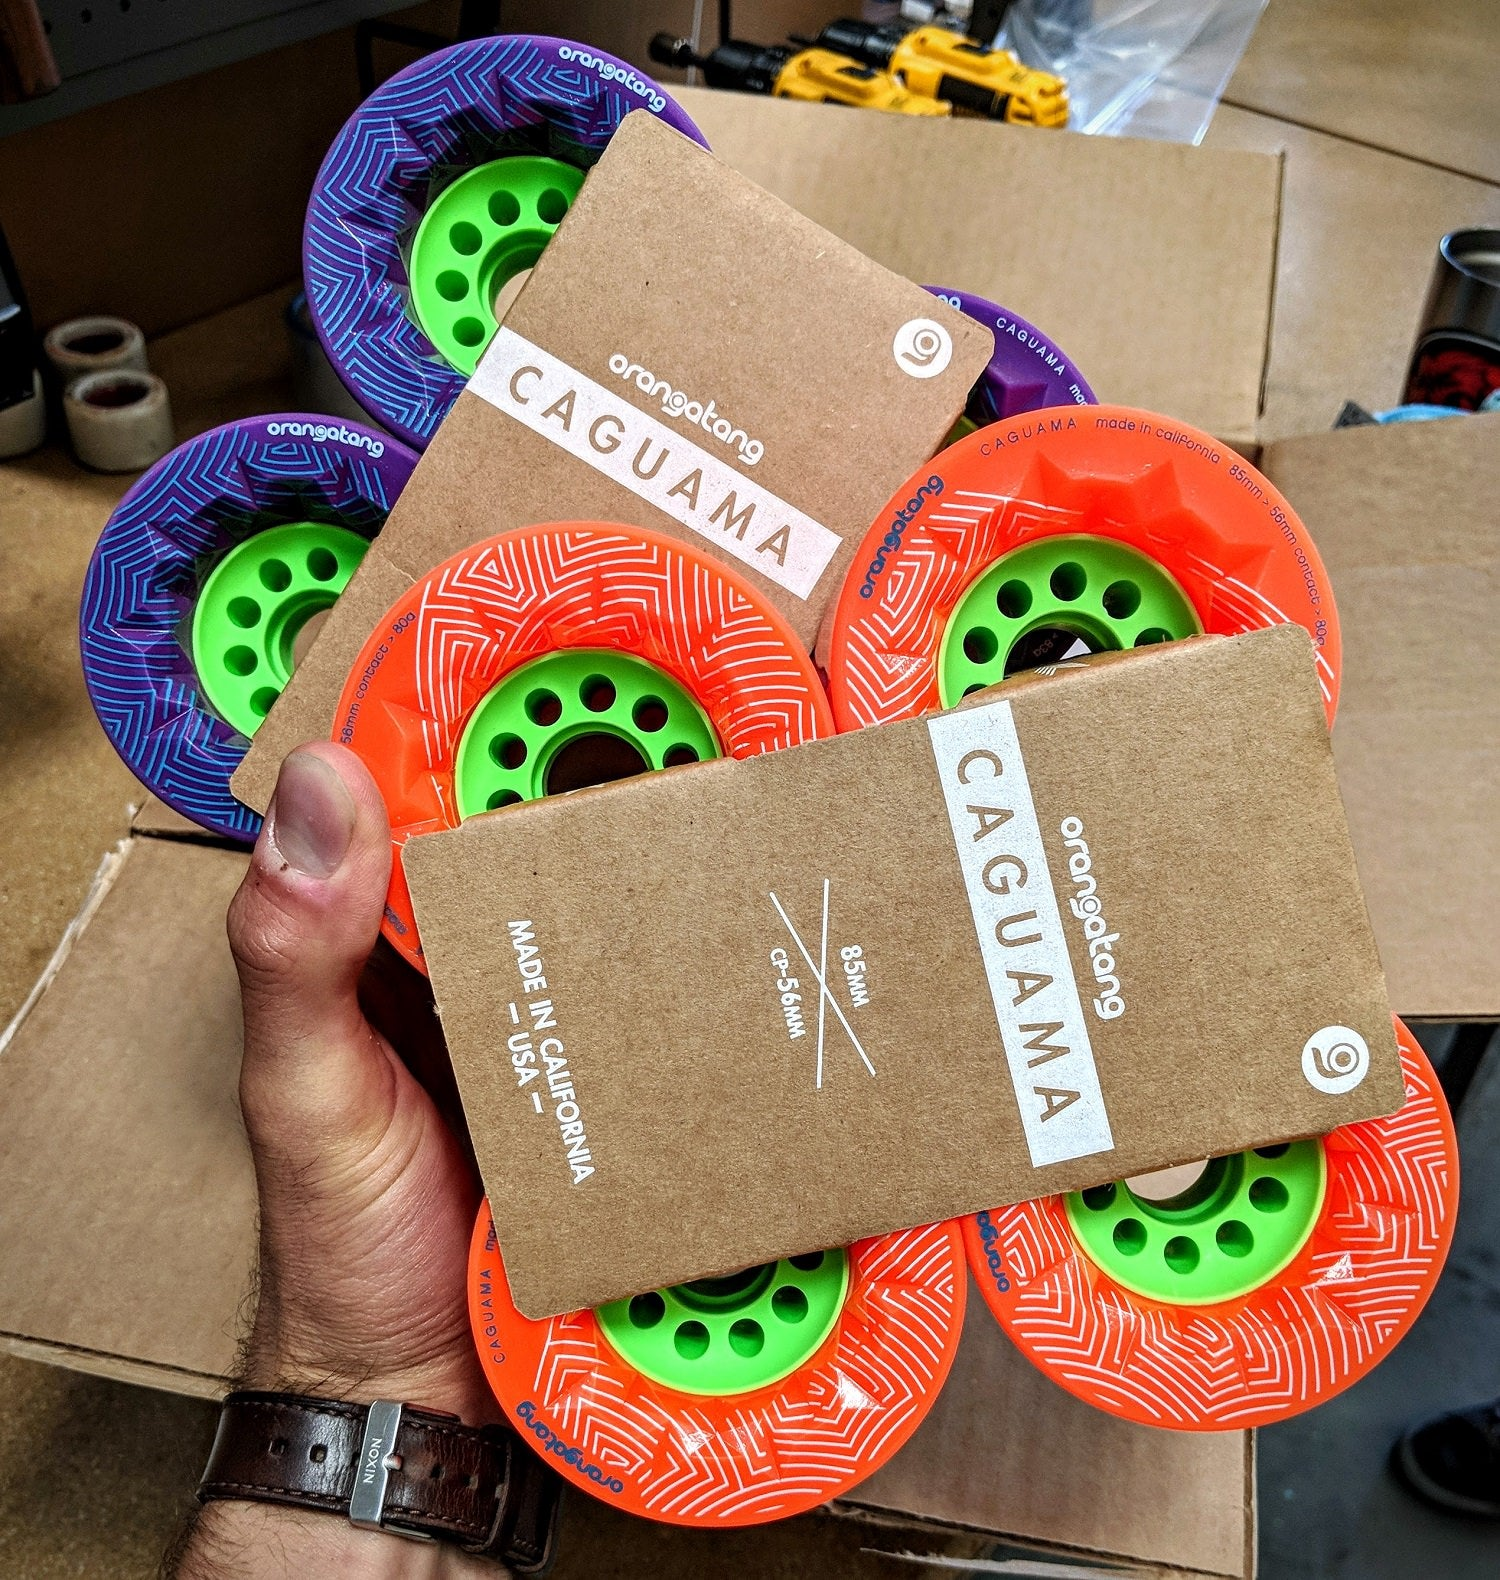 The new Orangatang Caguama has a massive core to support 85mm of thane.